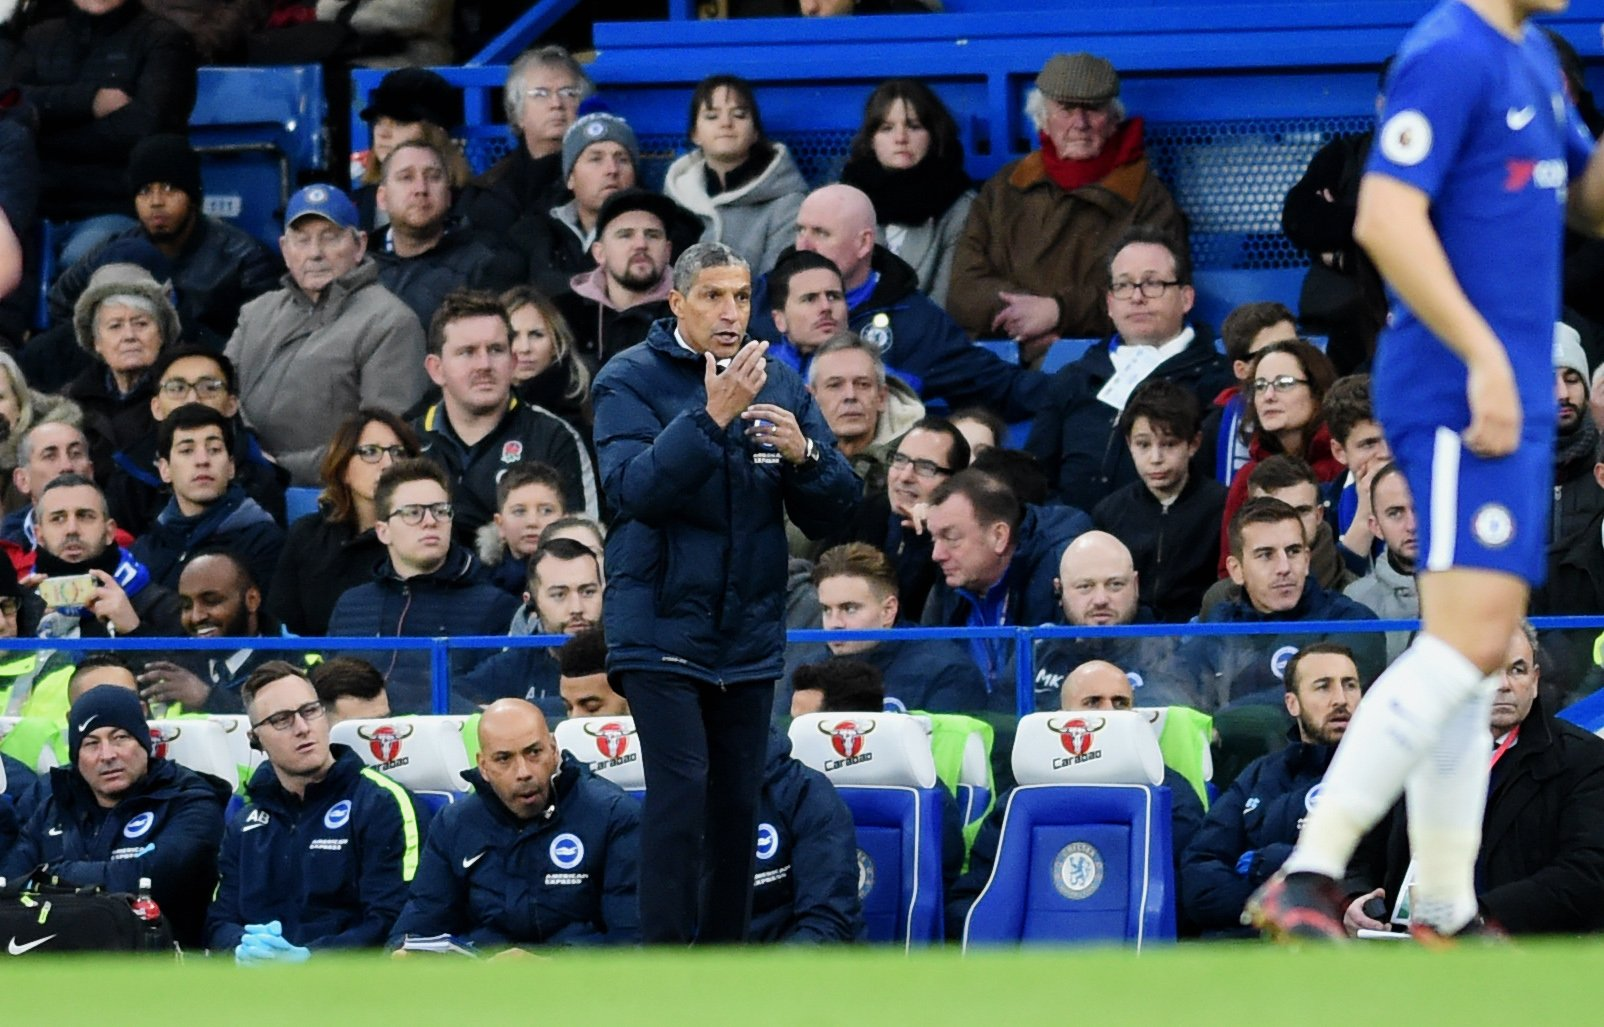 Chris Hughton is backing the way he sets up his side against the big guns